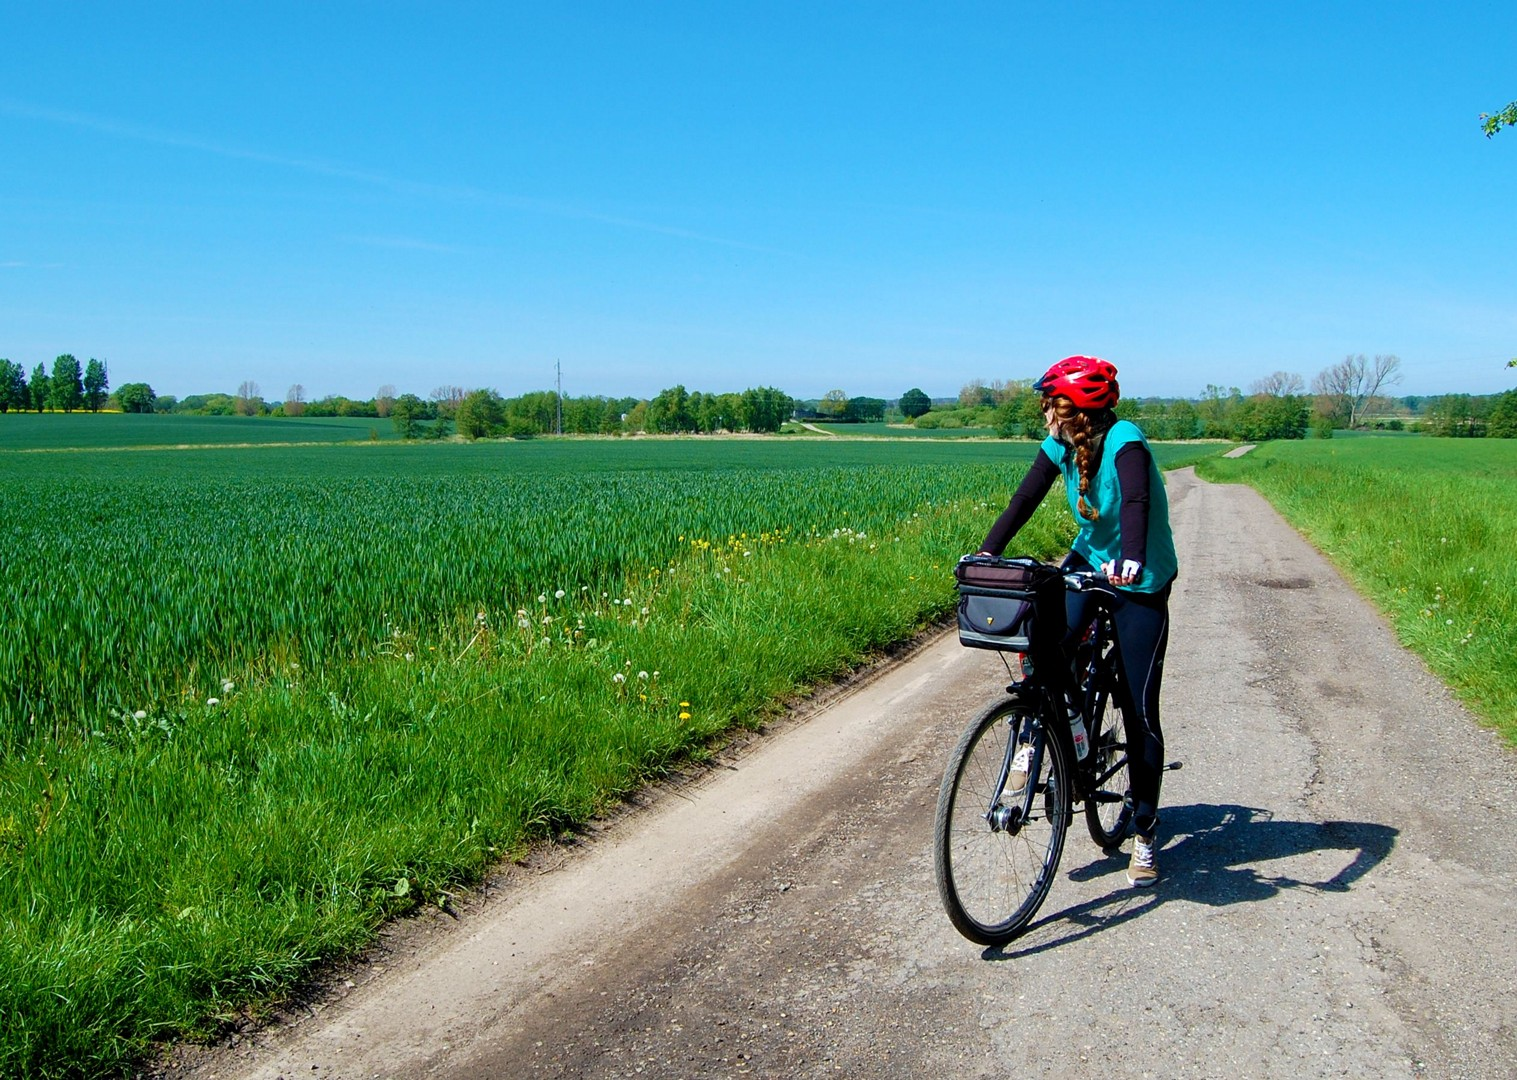 leisure-holiday-countryside-denmark-experience-nature-cycle-saddle-skedaddle.jpg - Denmark - Coast, Castles and Copenhagen - Self-Guided Leisure Cycling Holiday - Leisure Cycling